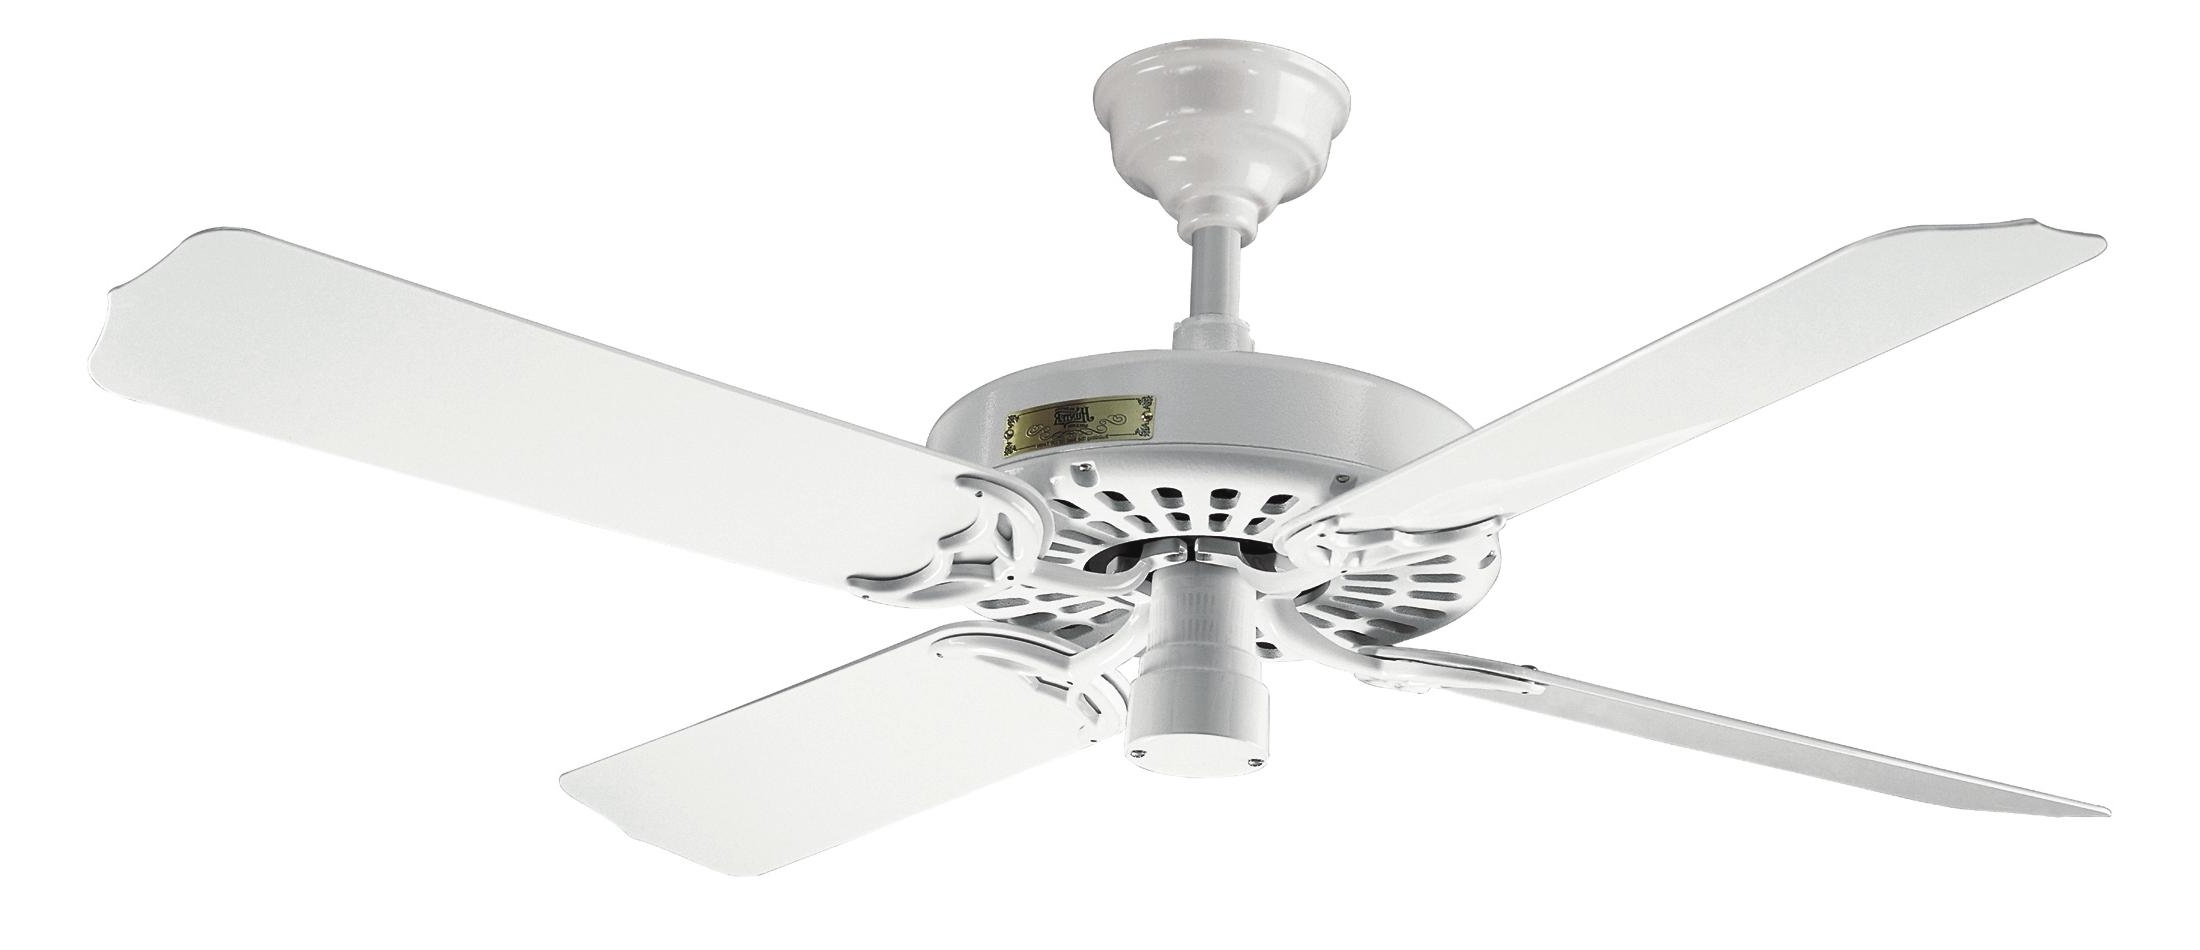 Popular Hunter Outdoor Original White Ceiling Fan 25602 In White, Best For White Outdoor Ceiling Fans With Lights (View 17 of 20)